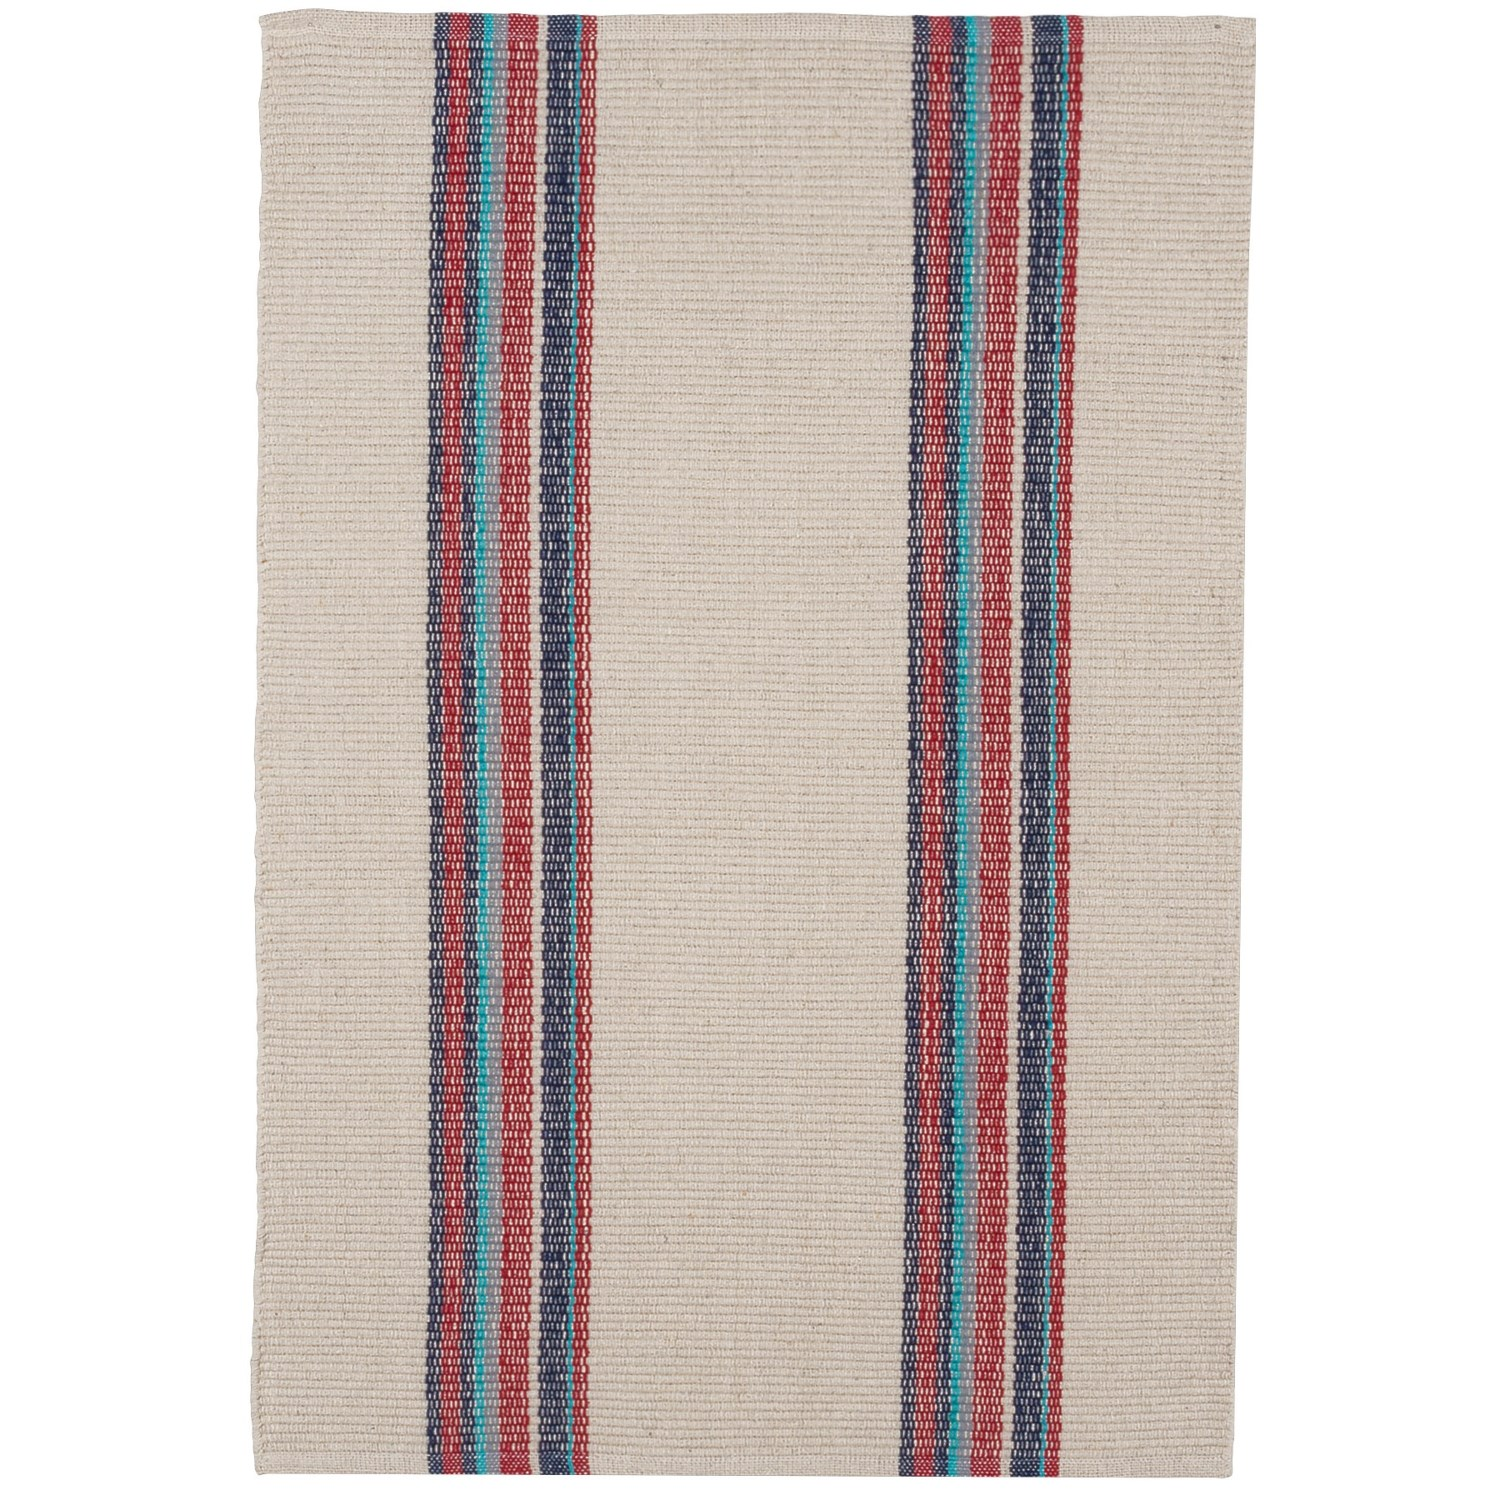 striped kitchen rug short wall cabinets caravan cotton dhurrie 2x3 save 58